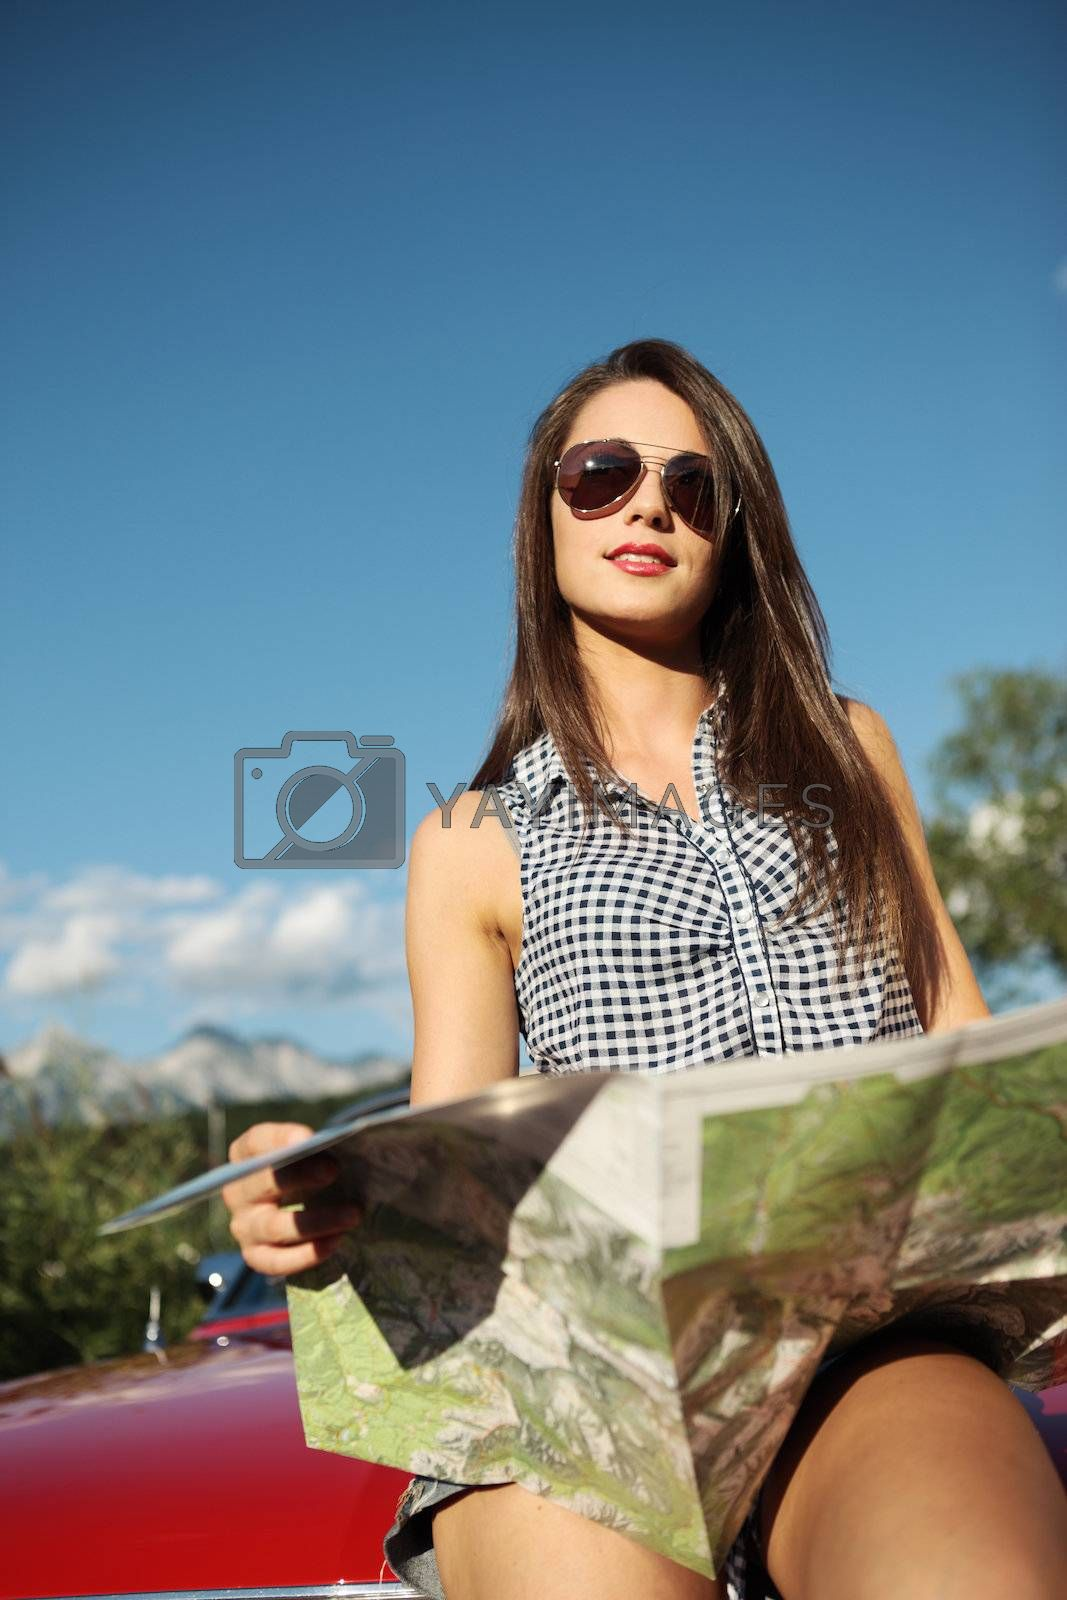 Young beautiful woman wearing sunglasses reading a roadmap